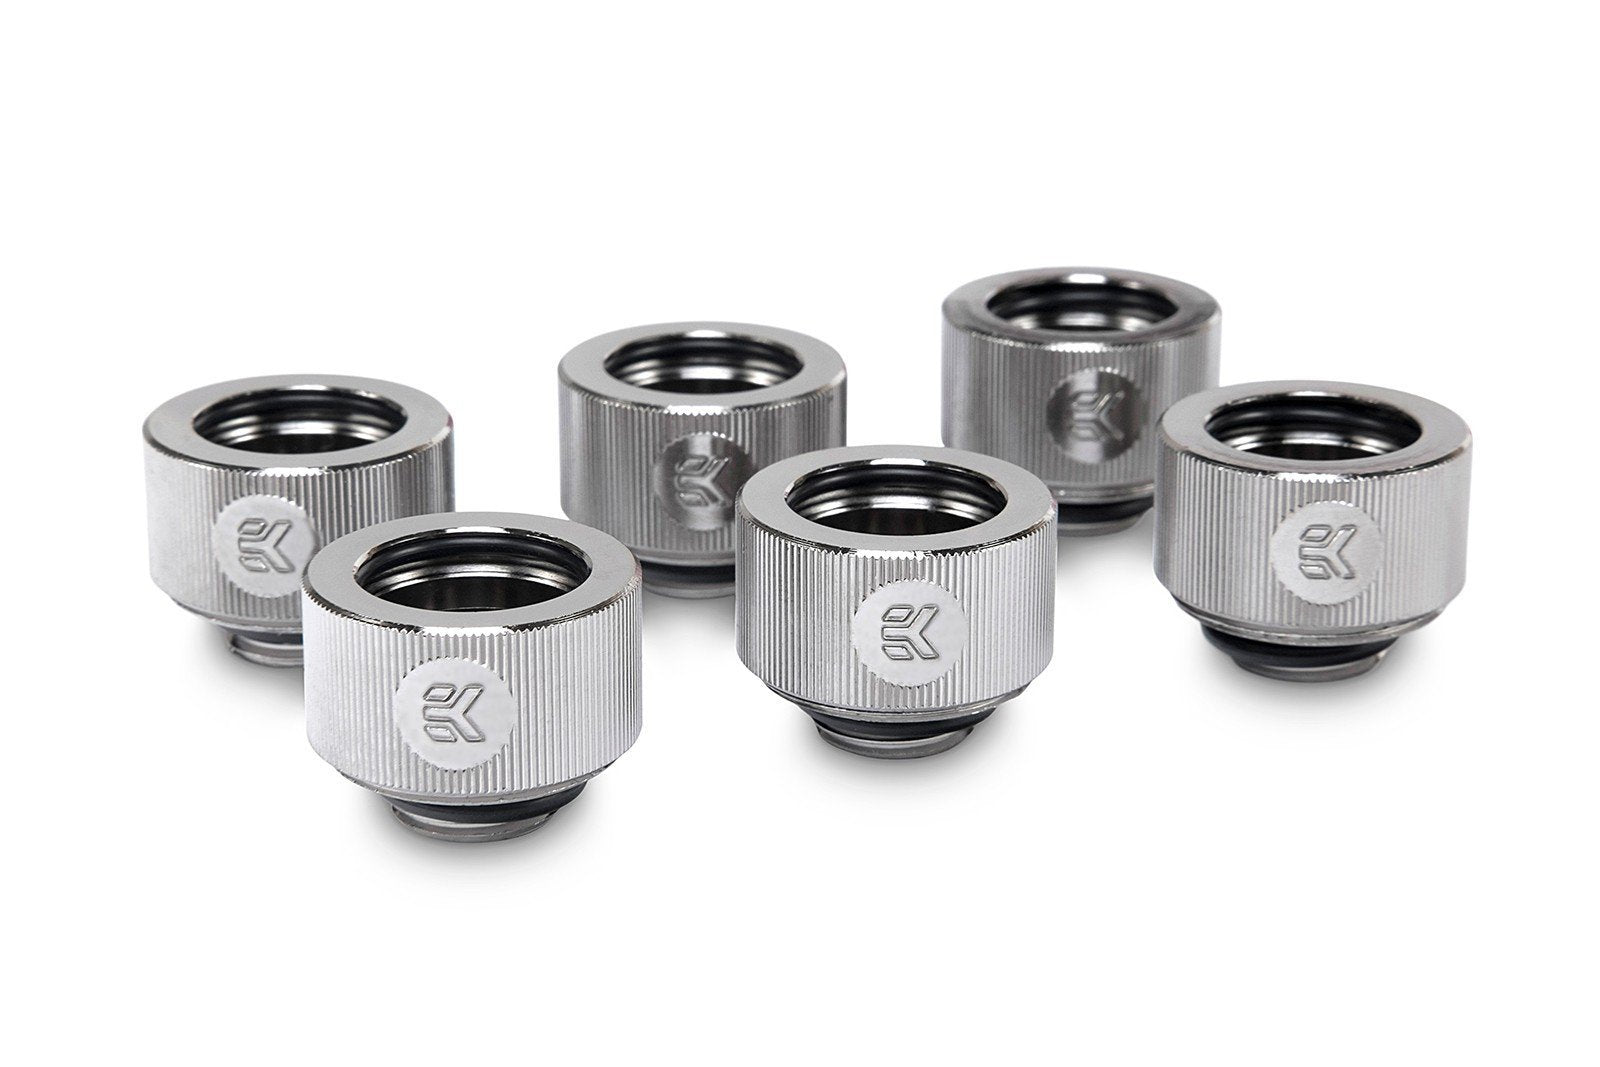 EKWB EK-HDC Fitting 16mm - Nickel (6-pack)